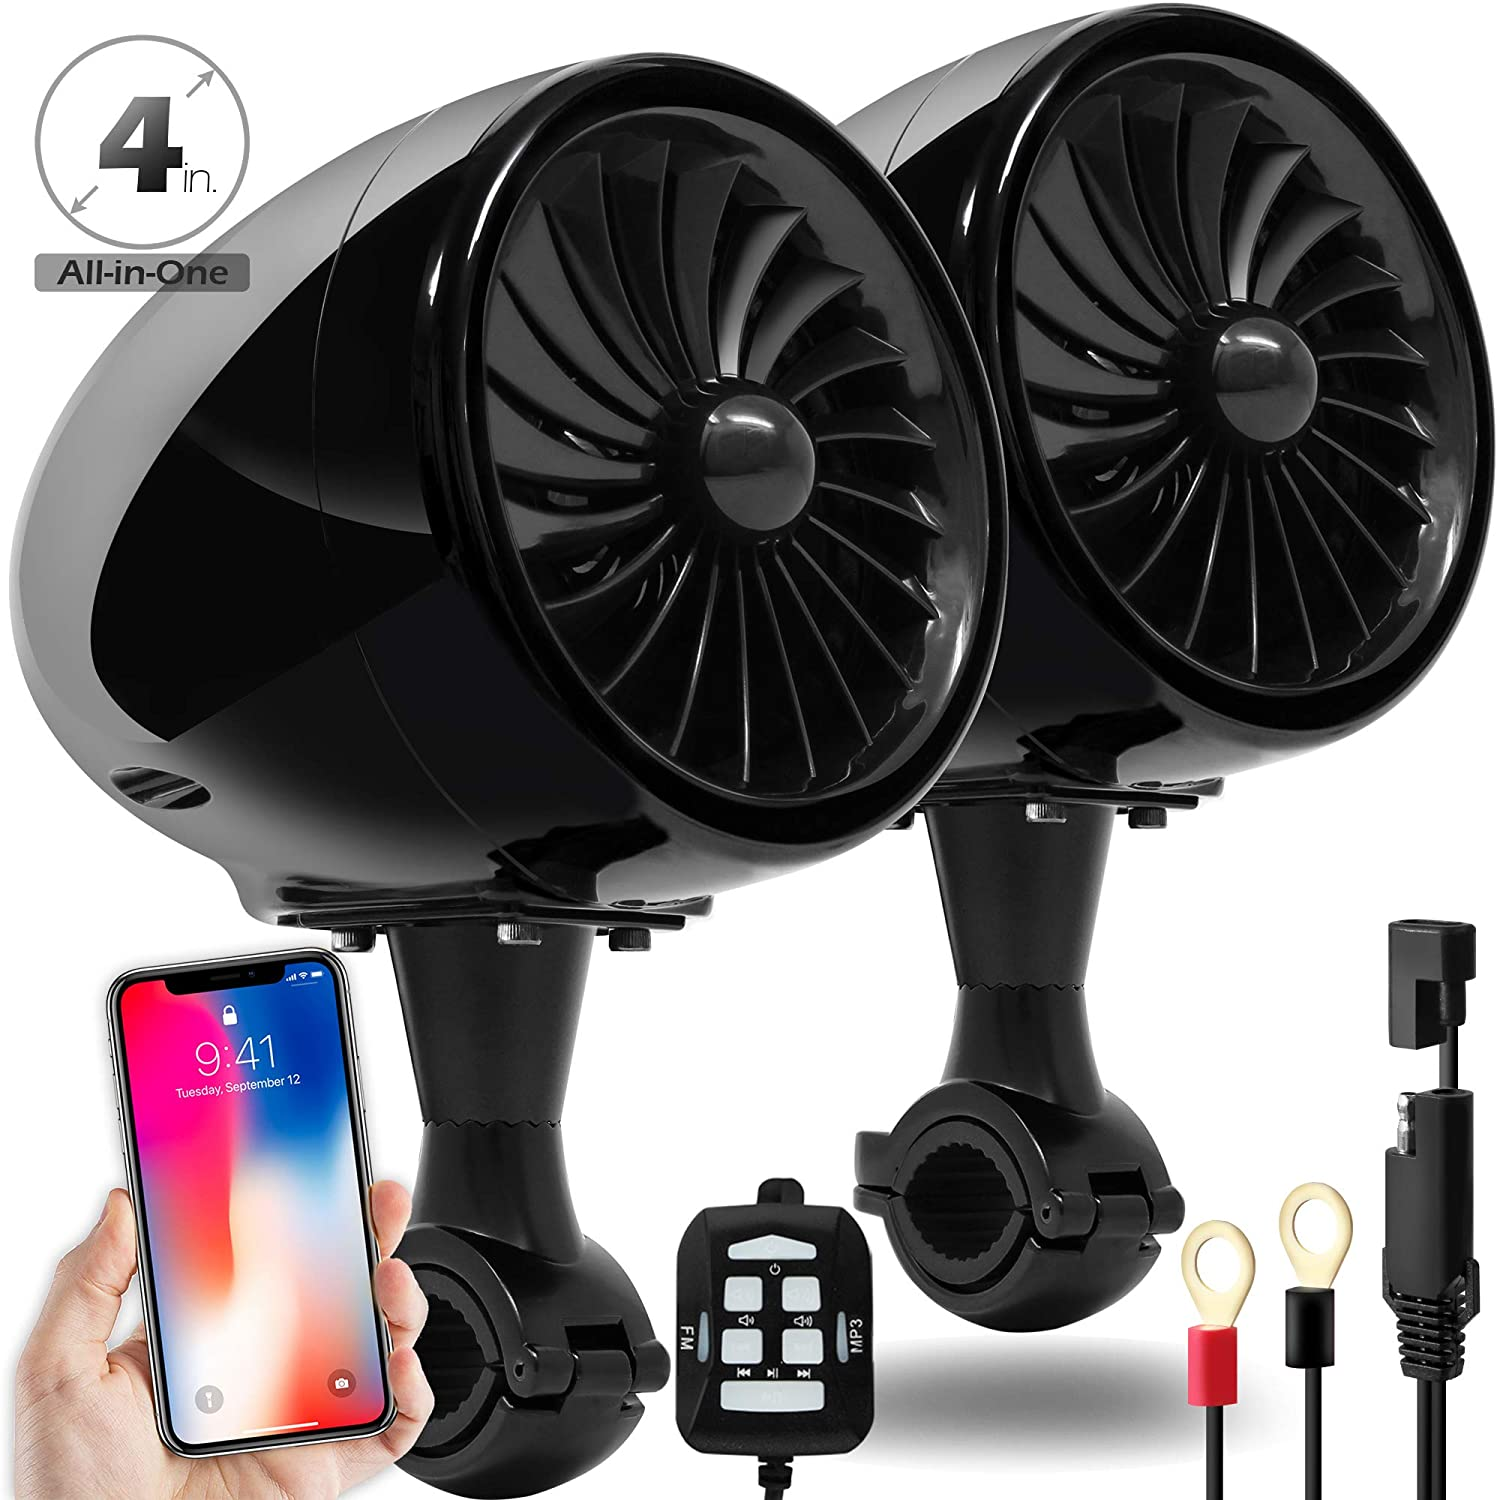 GoldenHawk 300W All-in-One 4' Full Range Waterproof Bluetooth Motorcycle Stereo Speakers 7/8-1.25 in. Handlebar Mount w/AUX & Wired Control Music Player Audio Amp System Harley Touring Cruiser ATV UTV Golden Hawk USA